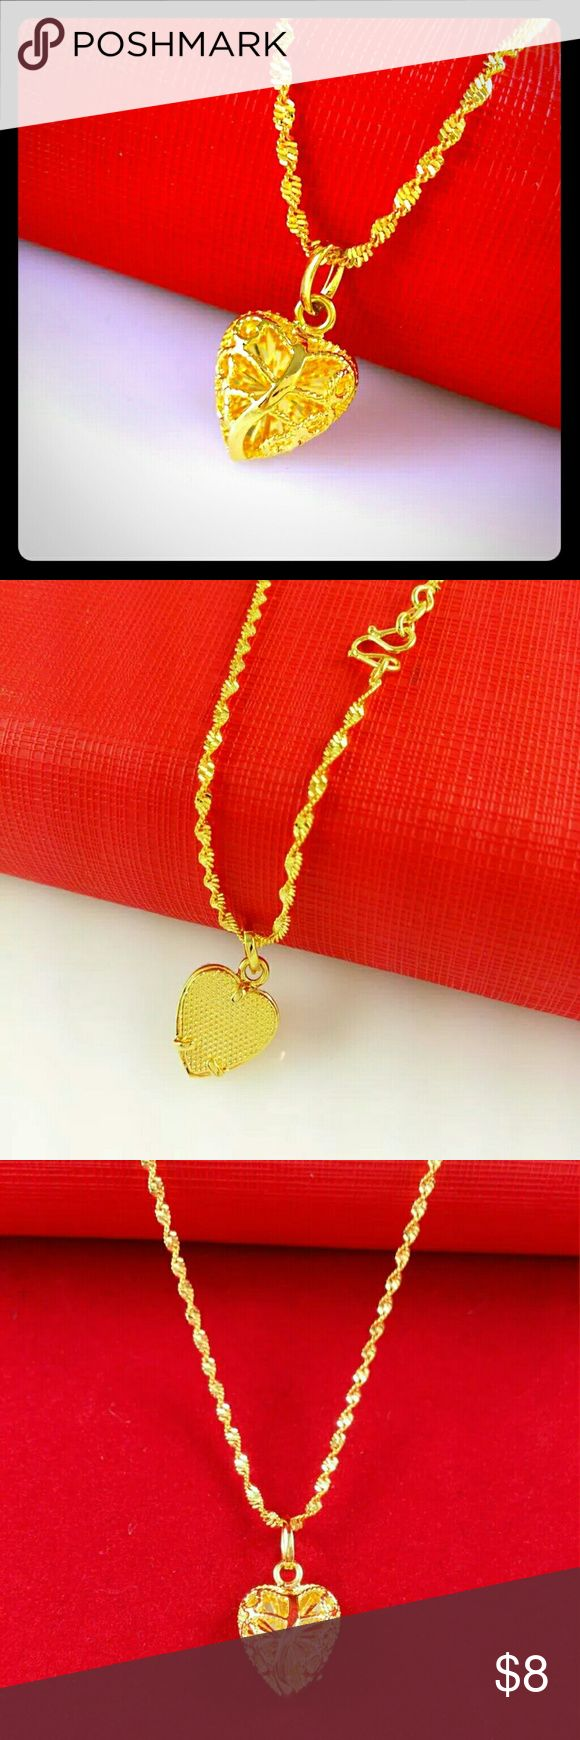 "24K Gold Filigree Heart Shaped Pendant and Chain Intricate filigree work in real, solid 24K Gold define this beautiful pendant and 16"" Gold wave chain. Jewelry Necklaces"